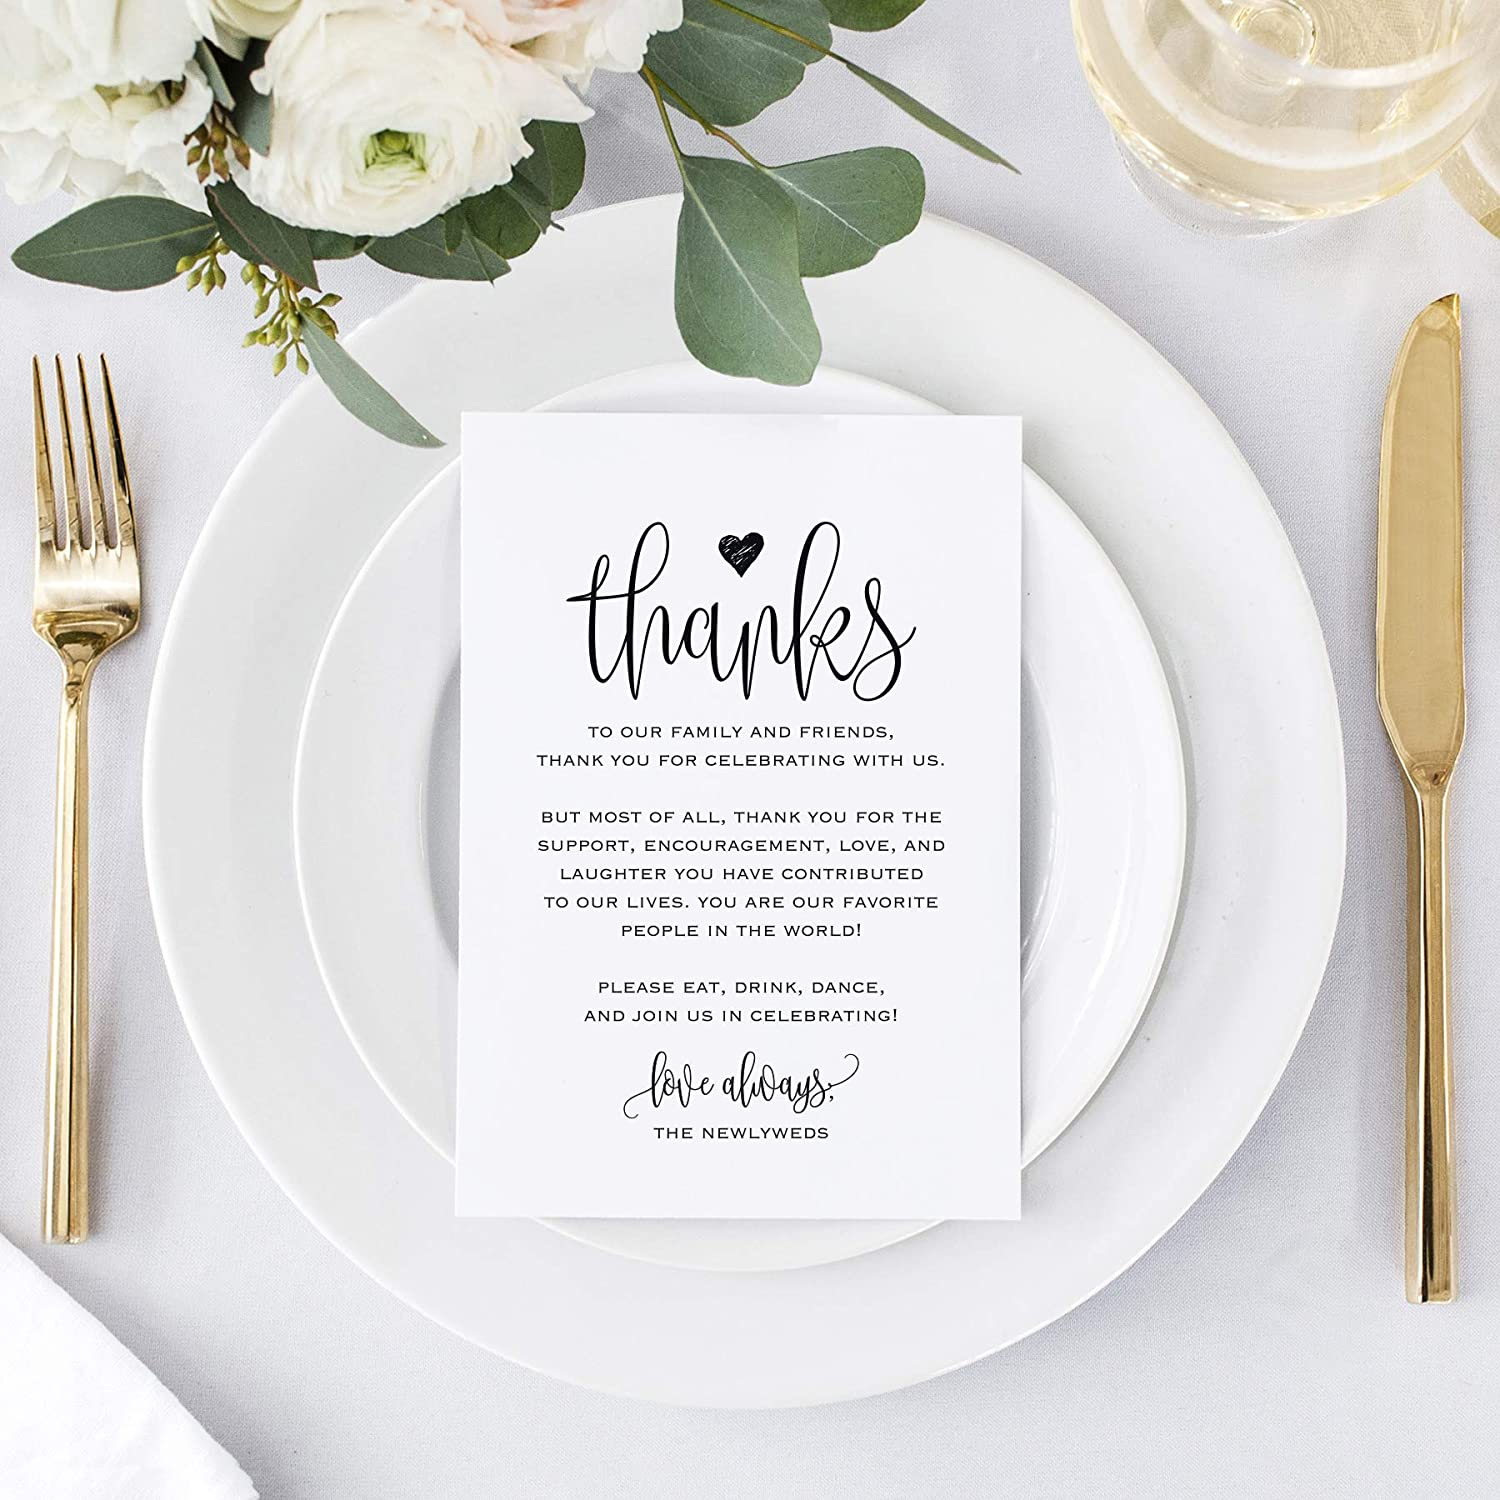 Bliss Collections Wedding Reception Thank You Cards, Pack of 10 Black Font  Cards, Great Addition to Your Table Centerpiece, Place Setting, Wedding